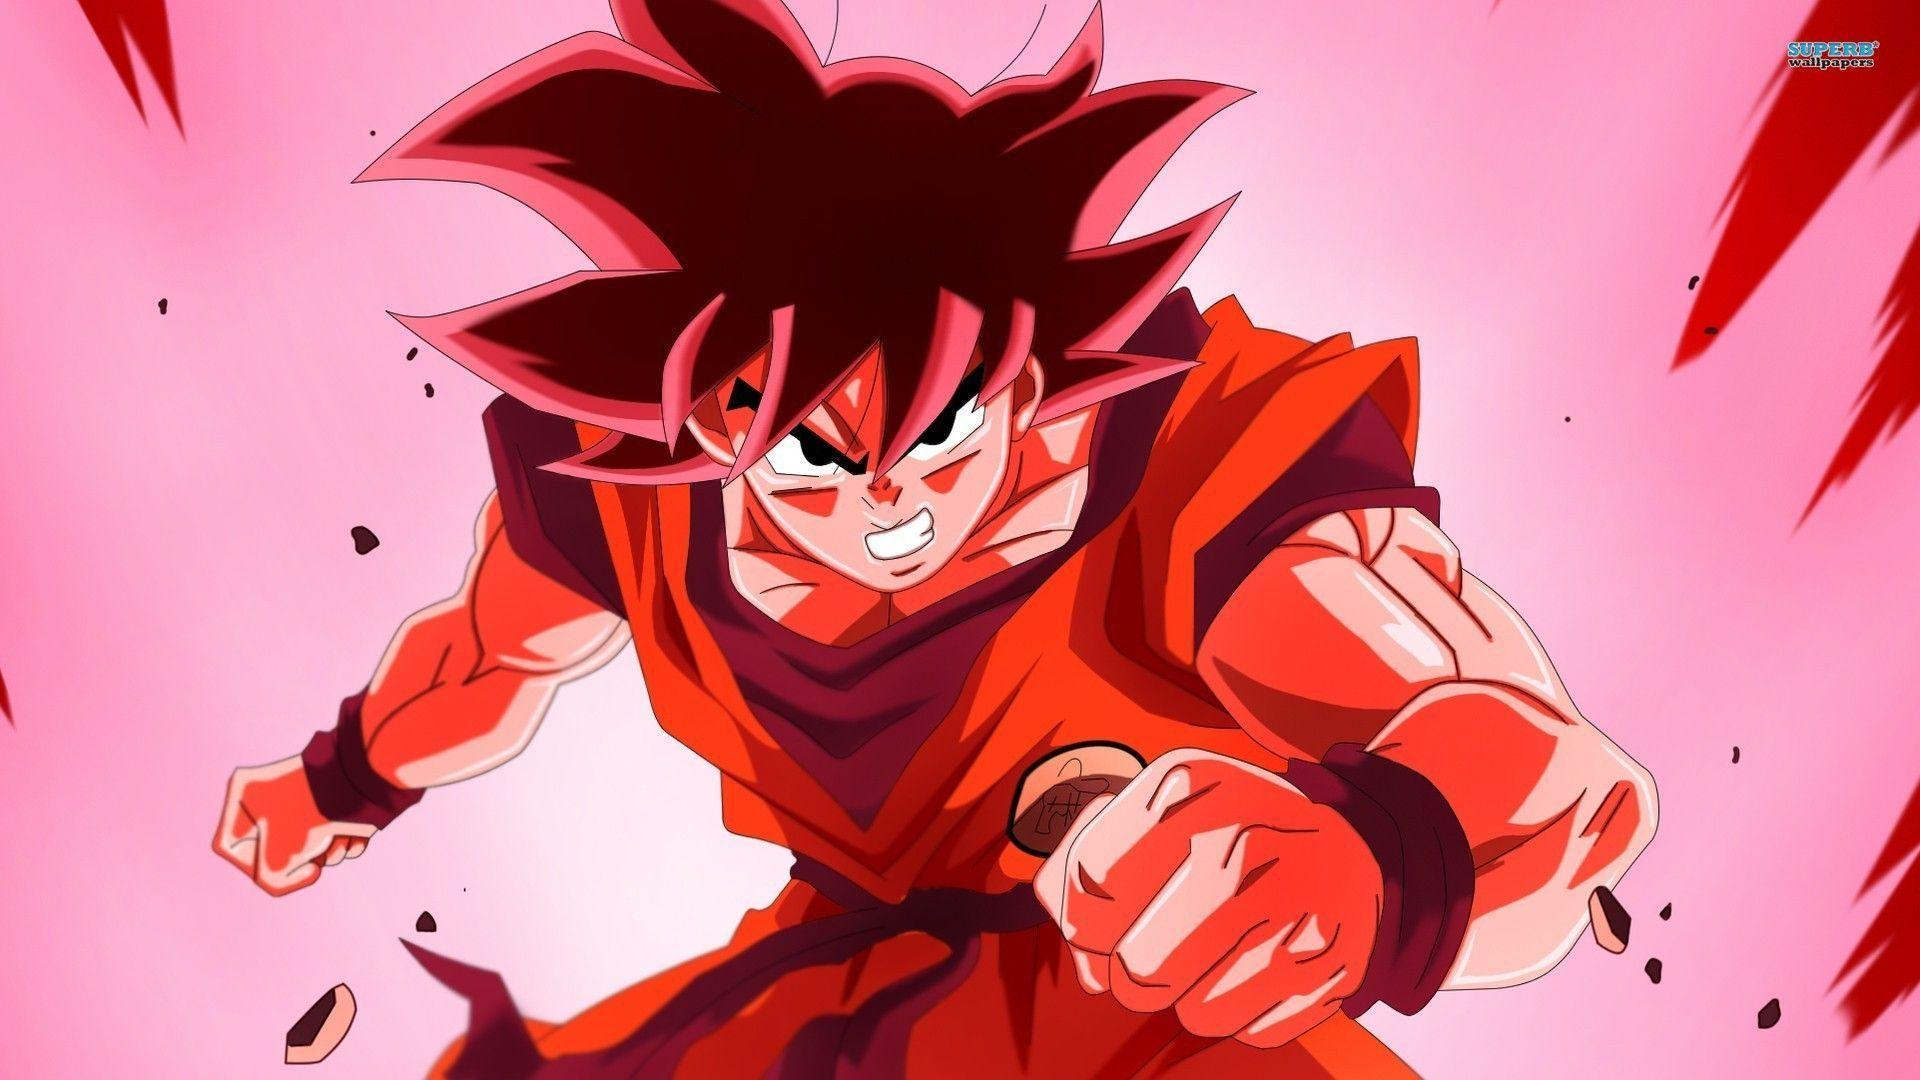 Goku* - Dragon Ball Z Wallpaper (35546698) - Fanpop